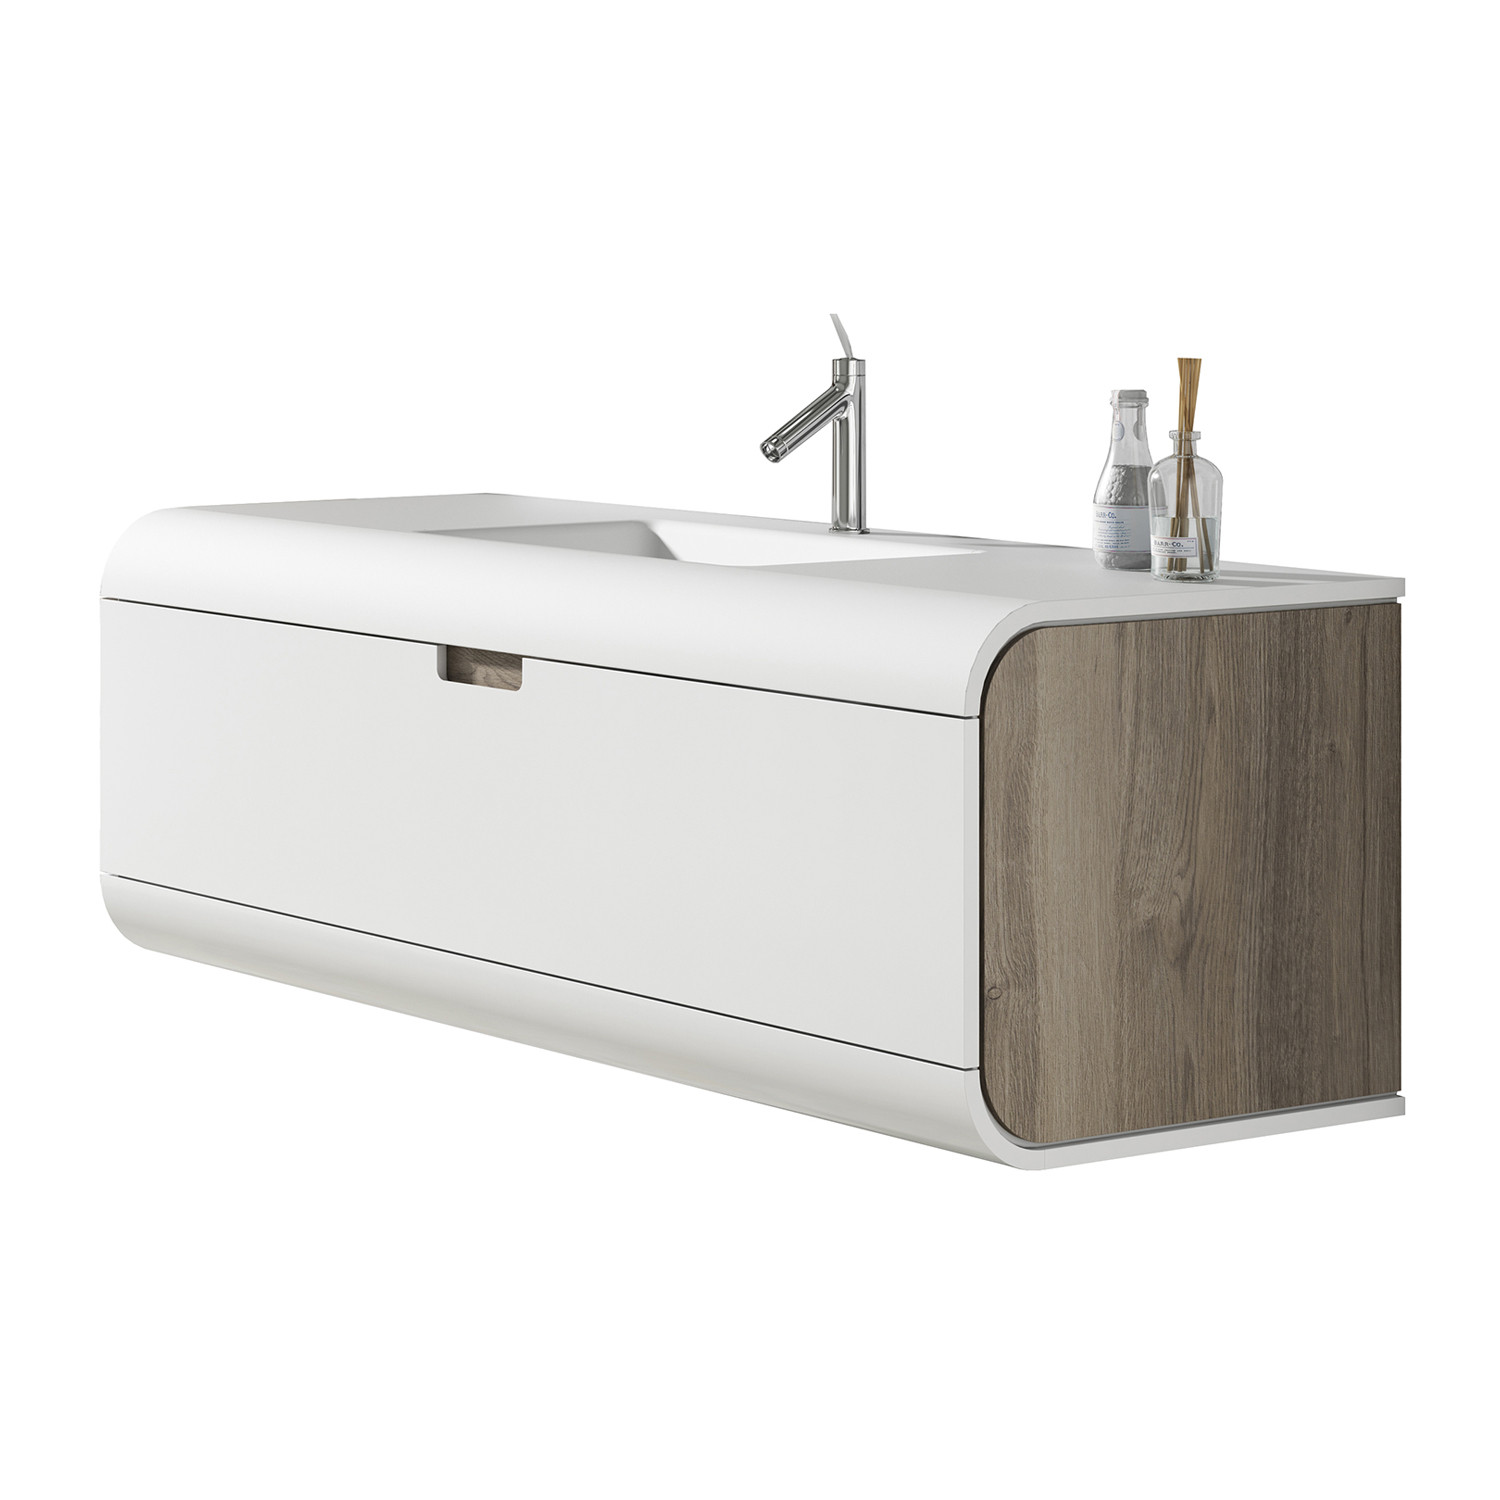 Sunne 800mm 1 Drawer Wall Hung Vanity Unit With Solid Surface Basin Frontlinebathrooms Com